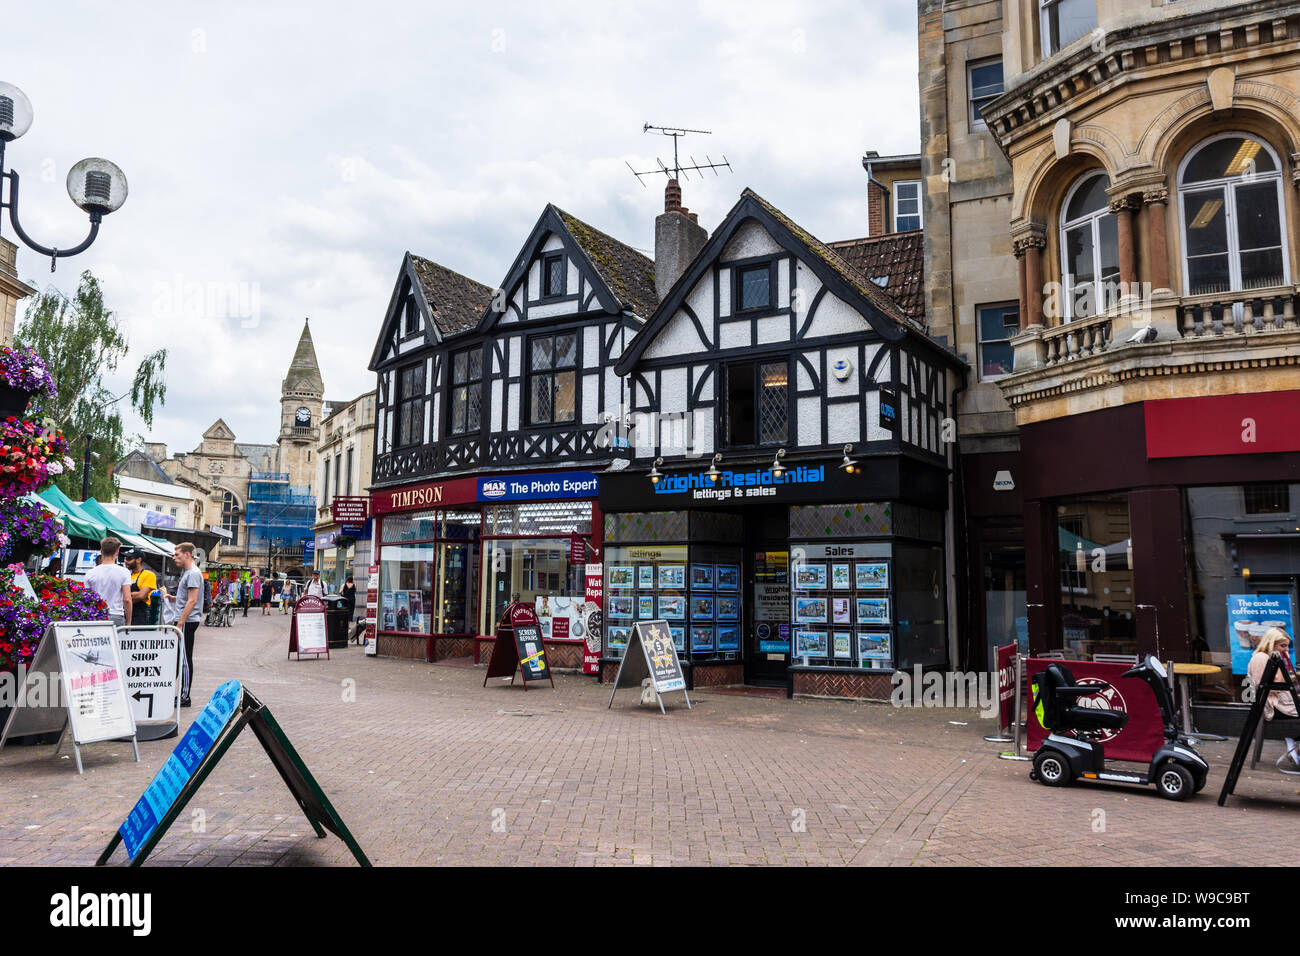 3 shops on Fore street Trowbridge in a Mock Tudor building with market day traders visible in the street Stock Photo